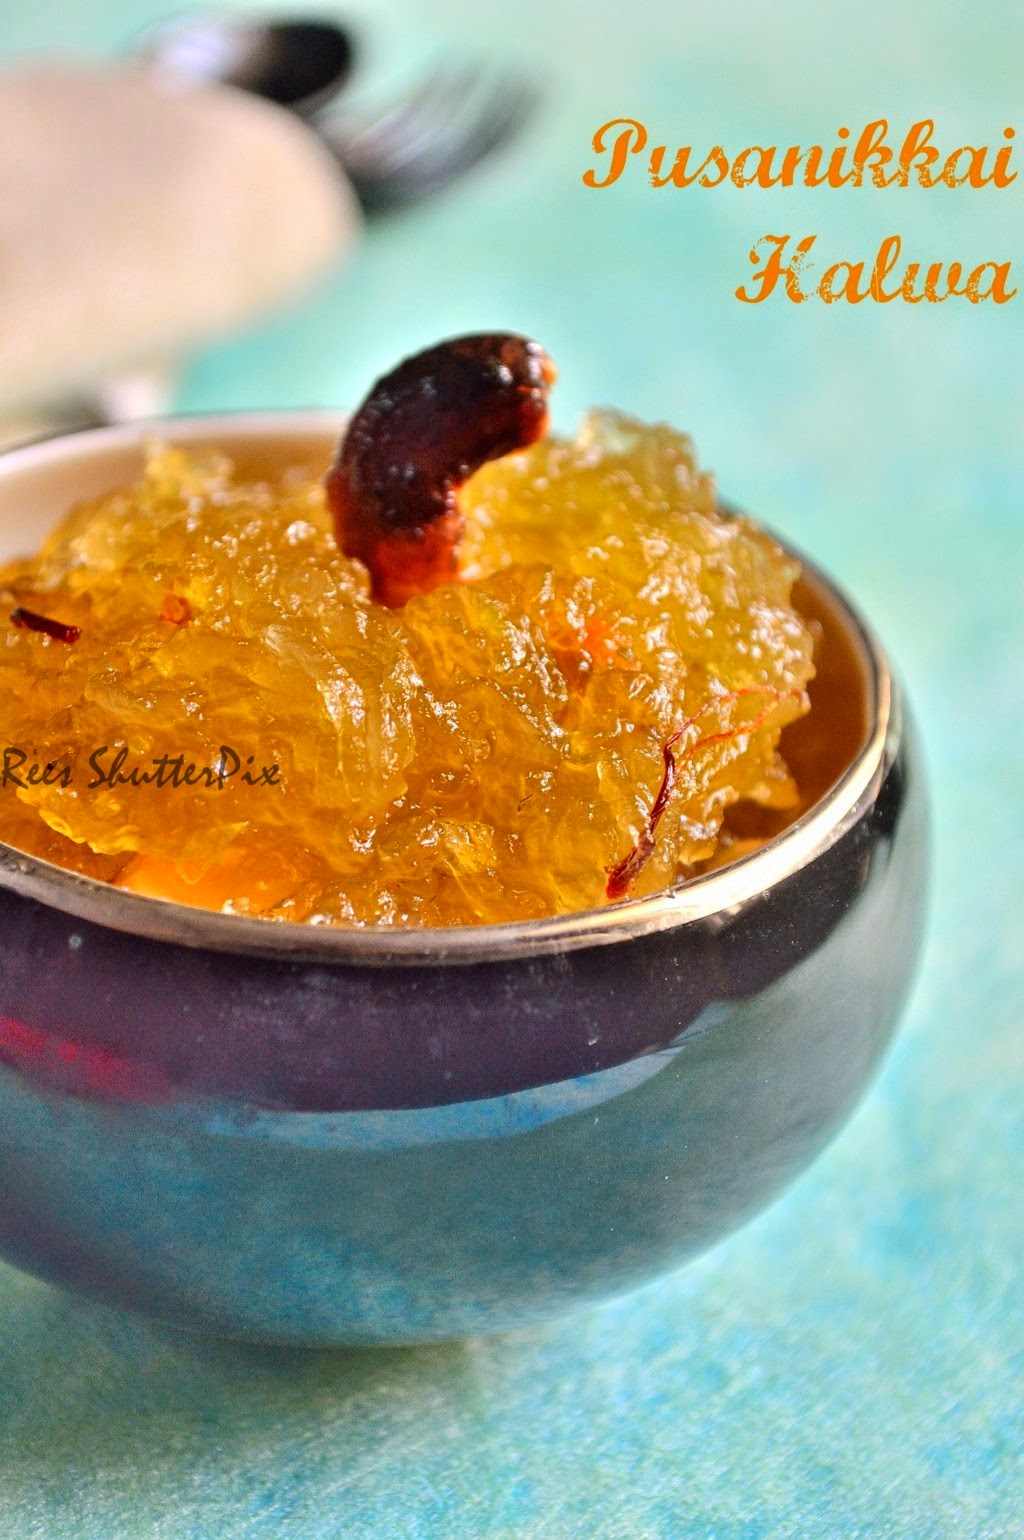 step by step poosanikai halwa recipe, kasi halwa, pumpkin halwa, how to make poosanikkai halwa, easy pusanikai halwa recipe, poosanikai halwa in tamil, white pumpkin, easy festival sweets, diwali sweets,